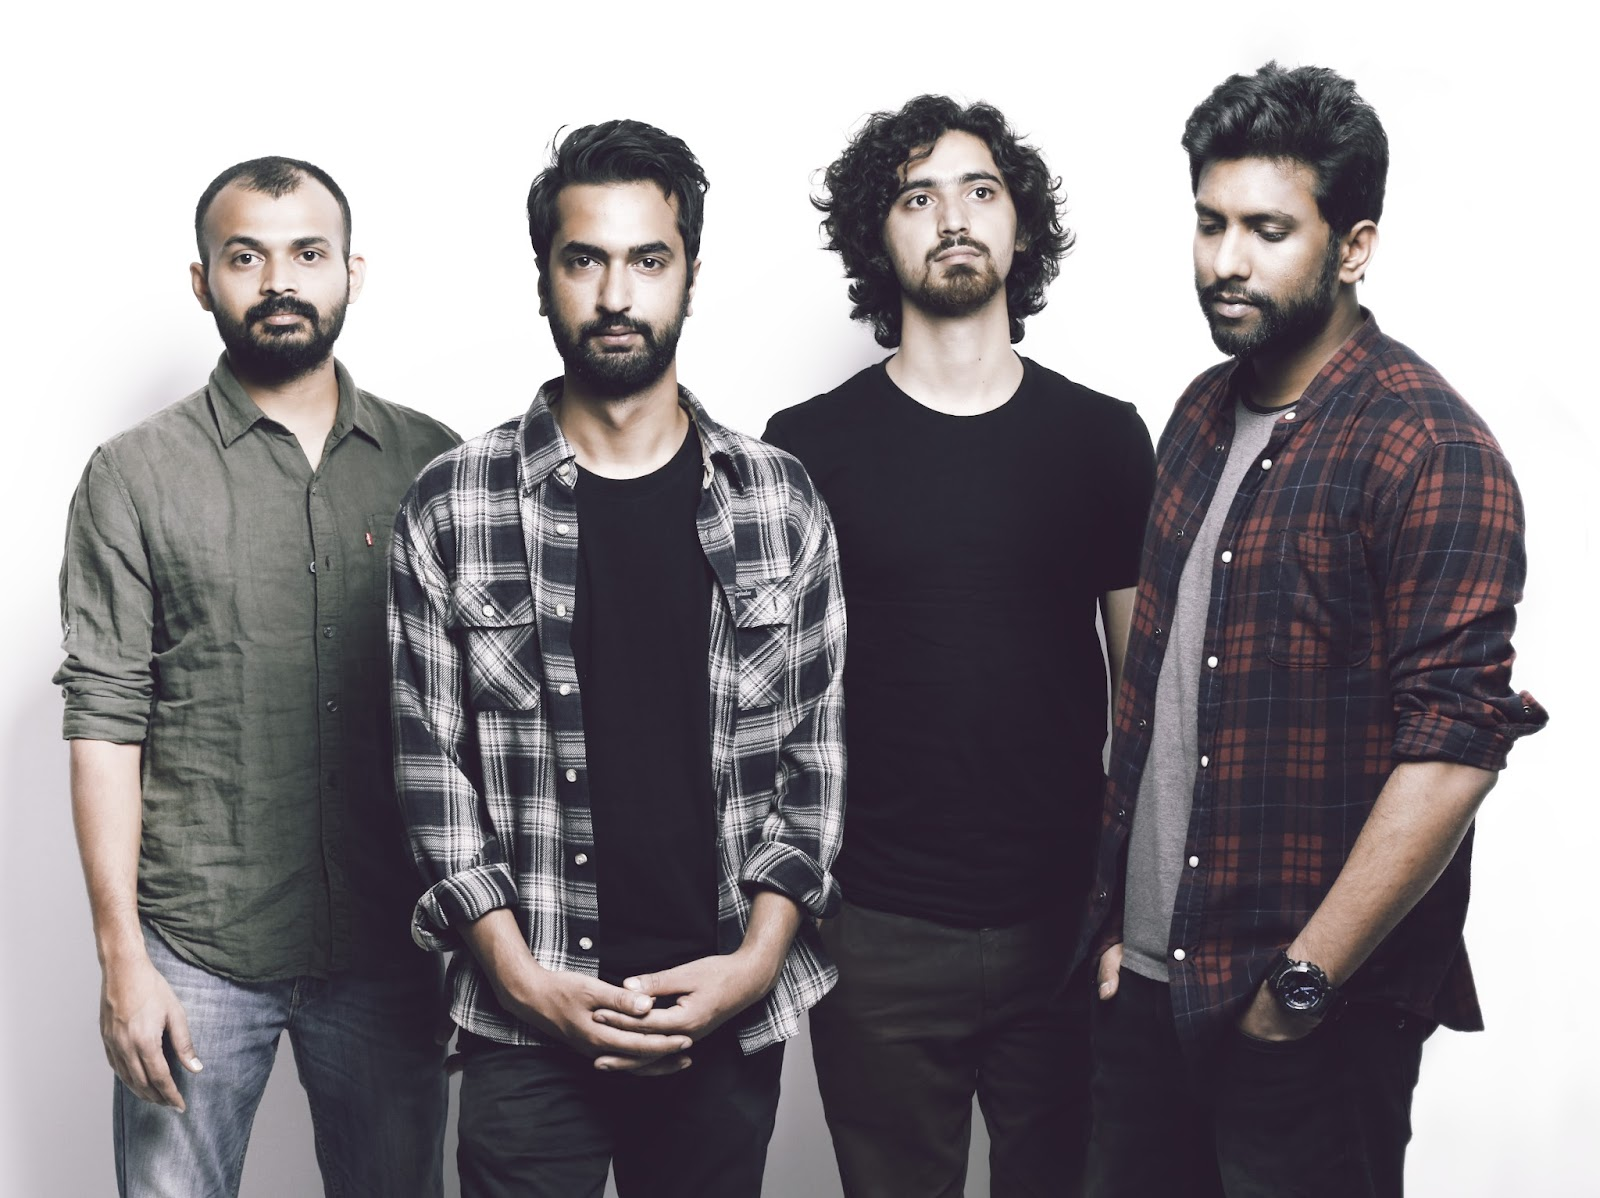 Parvaaz to make Canadian Debut at Monster Rock Orchestra